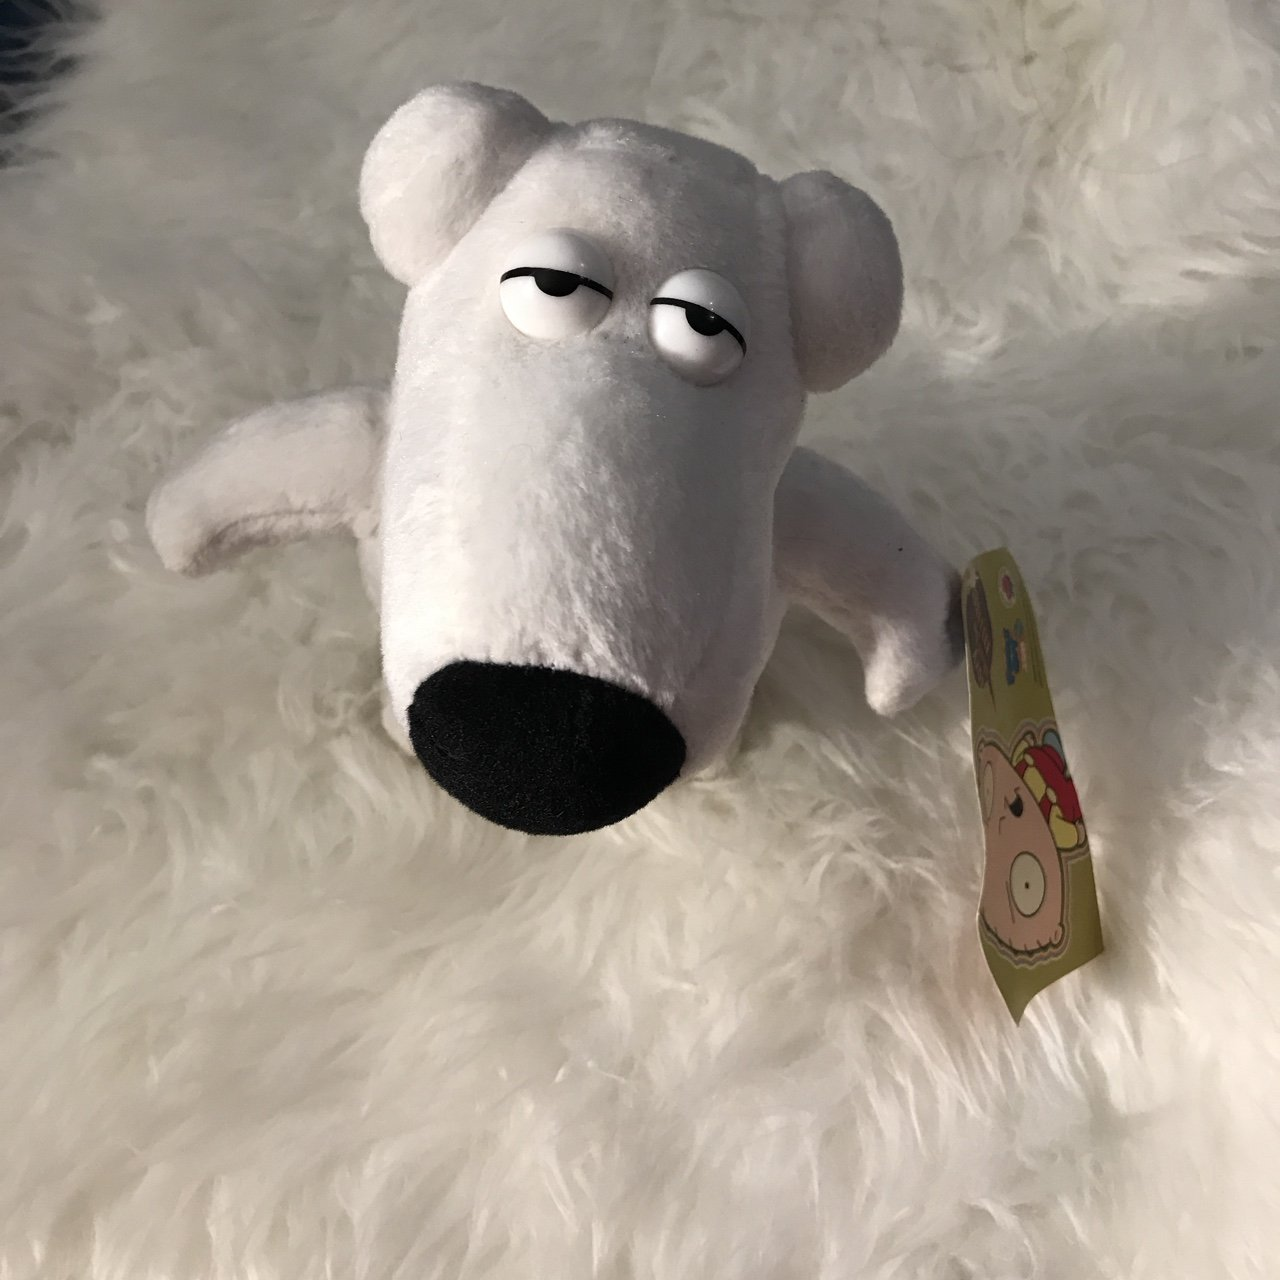 a16d0dd105 Brian from Family guy plush